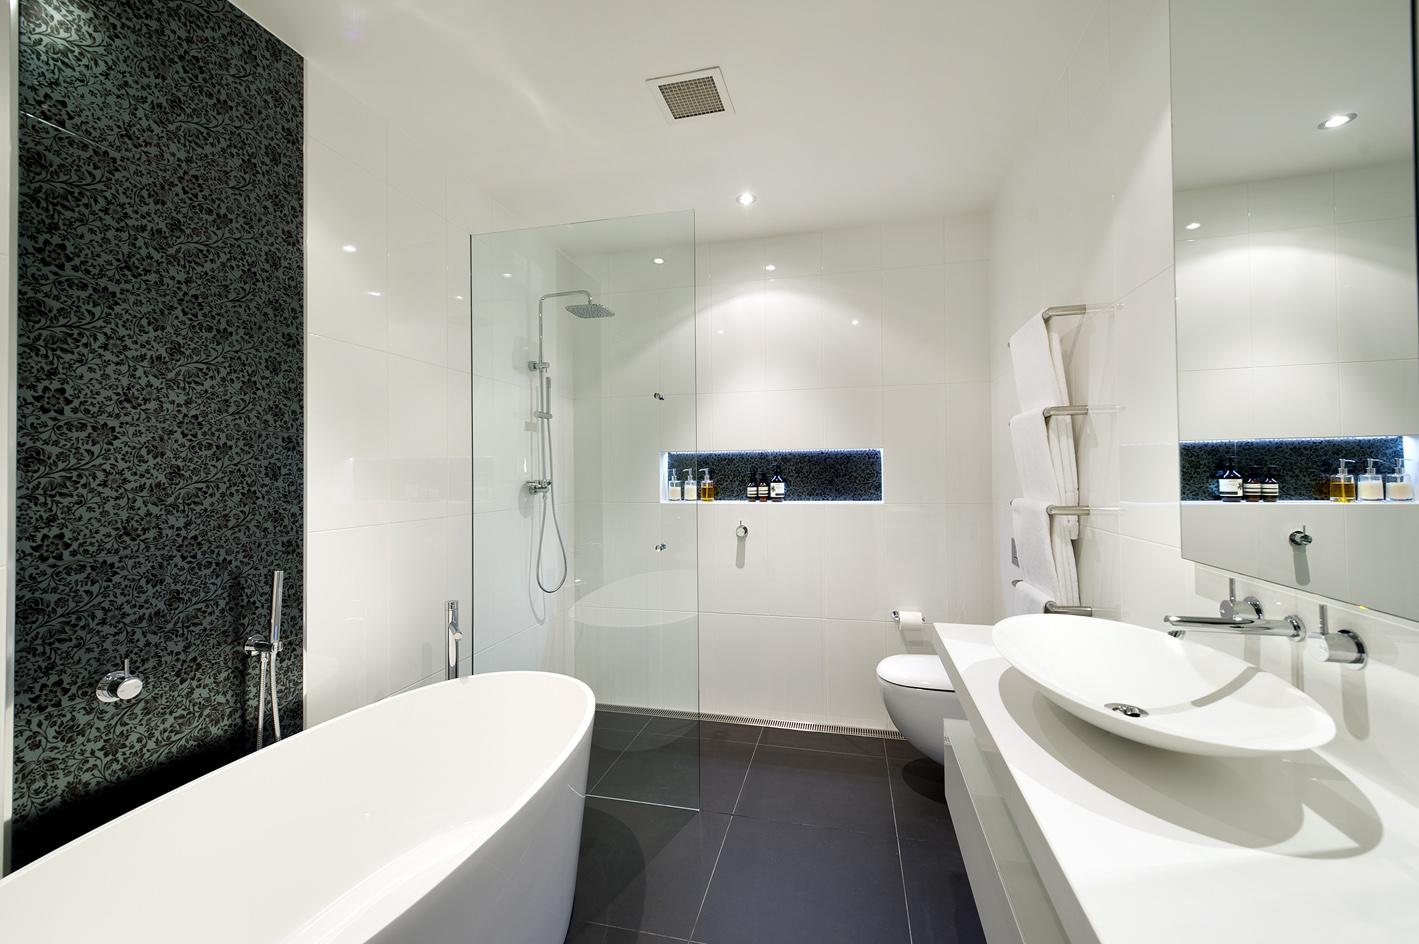 Design Bathroom Install Designer Equipment In Your Bathroom On A Budget